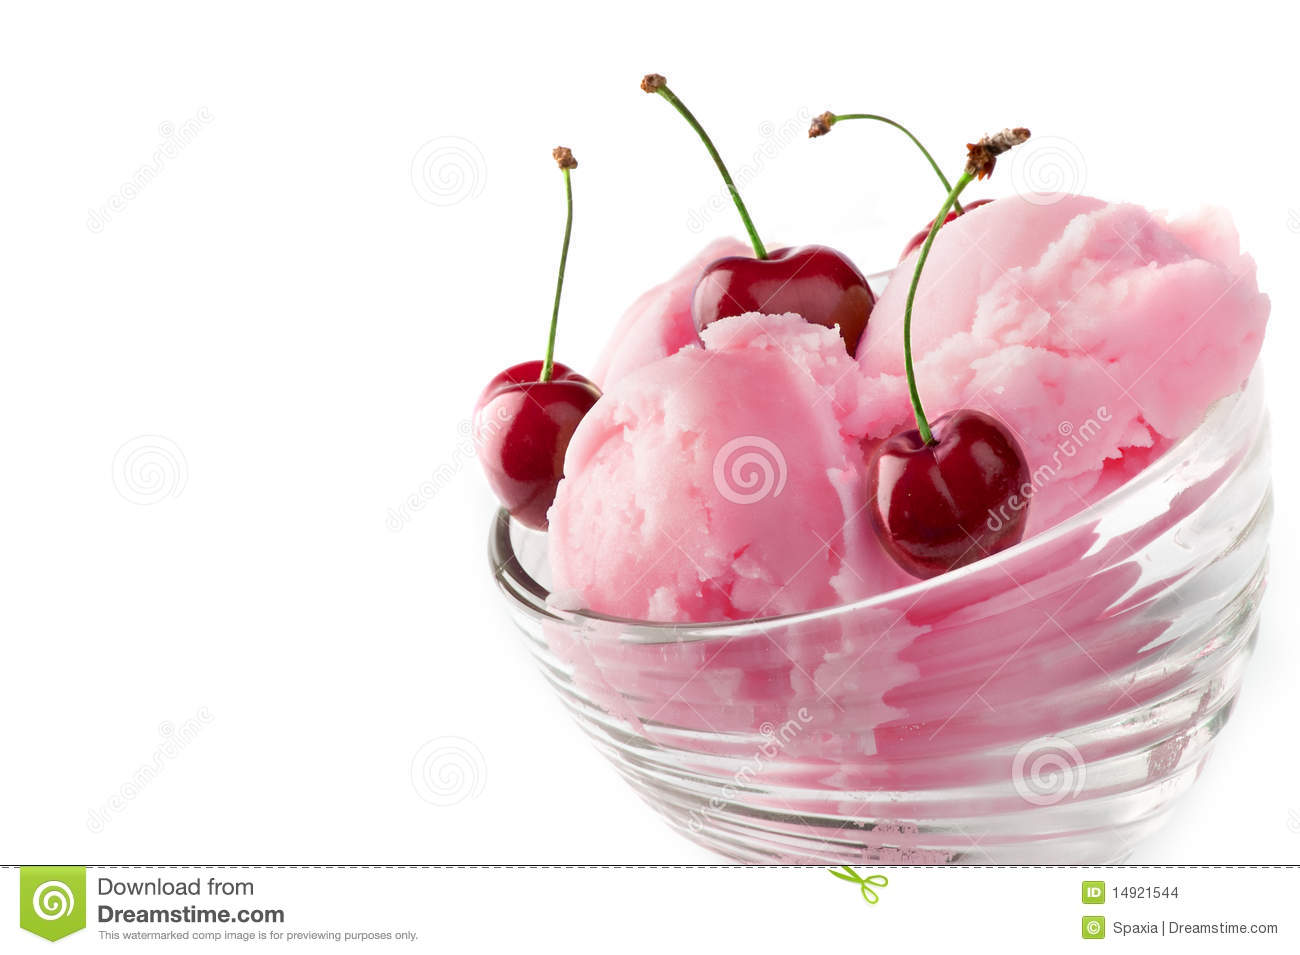 Fruit ice cream with cherry isolated on a white background.